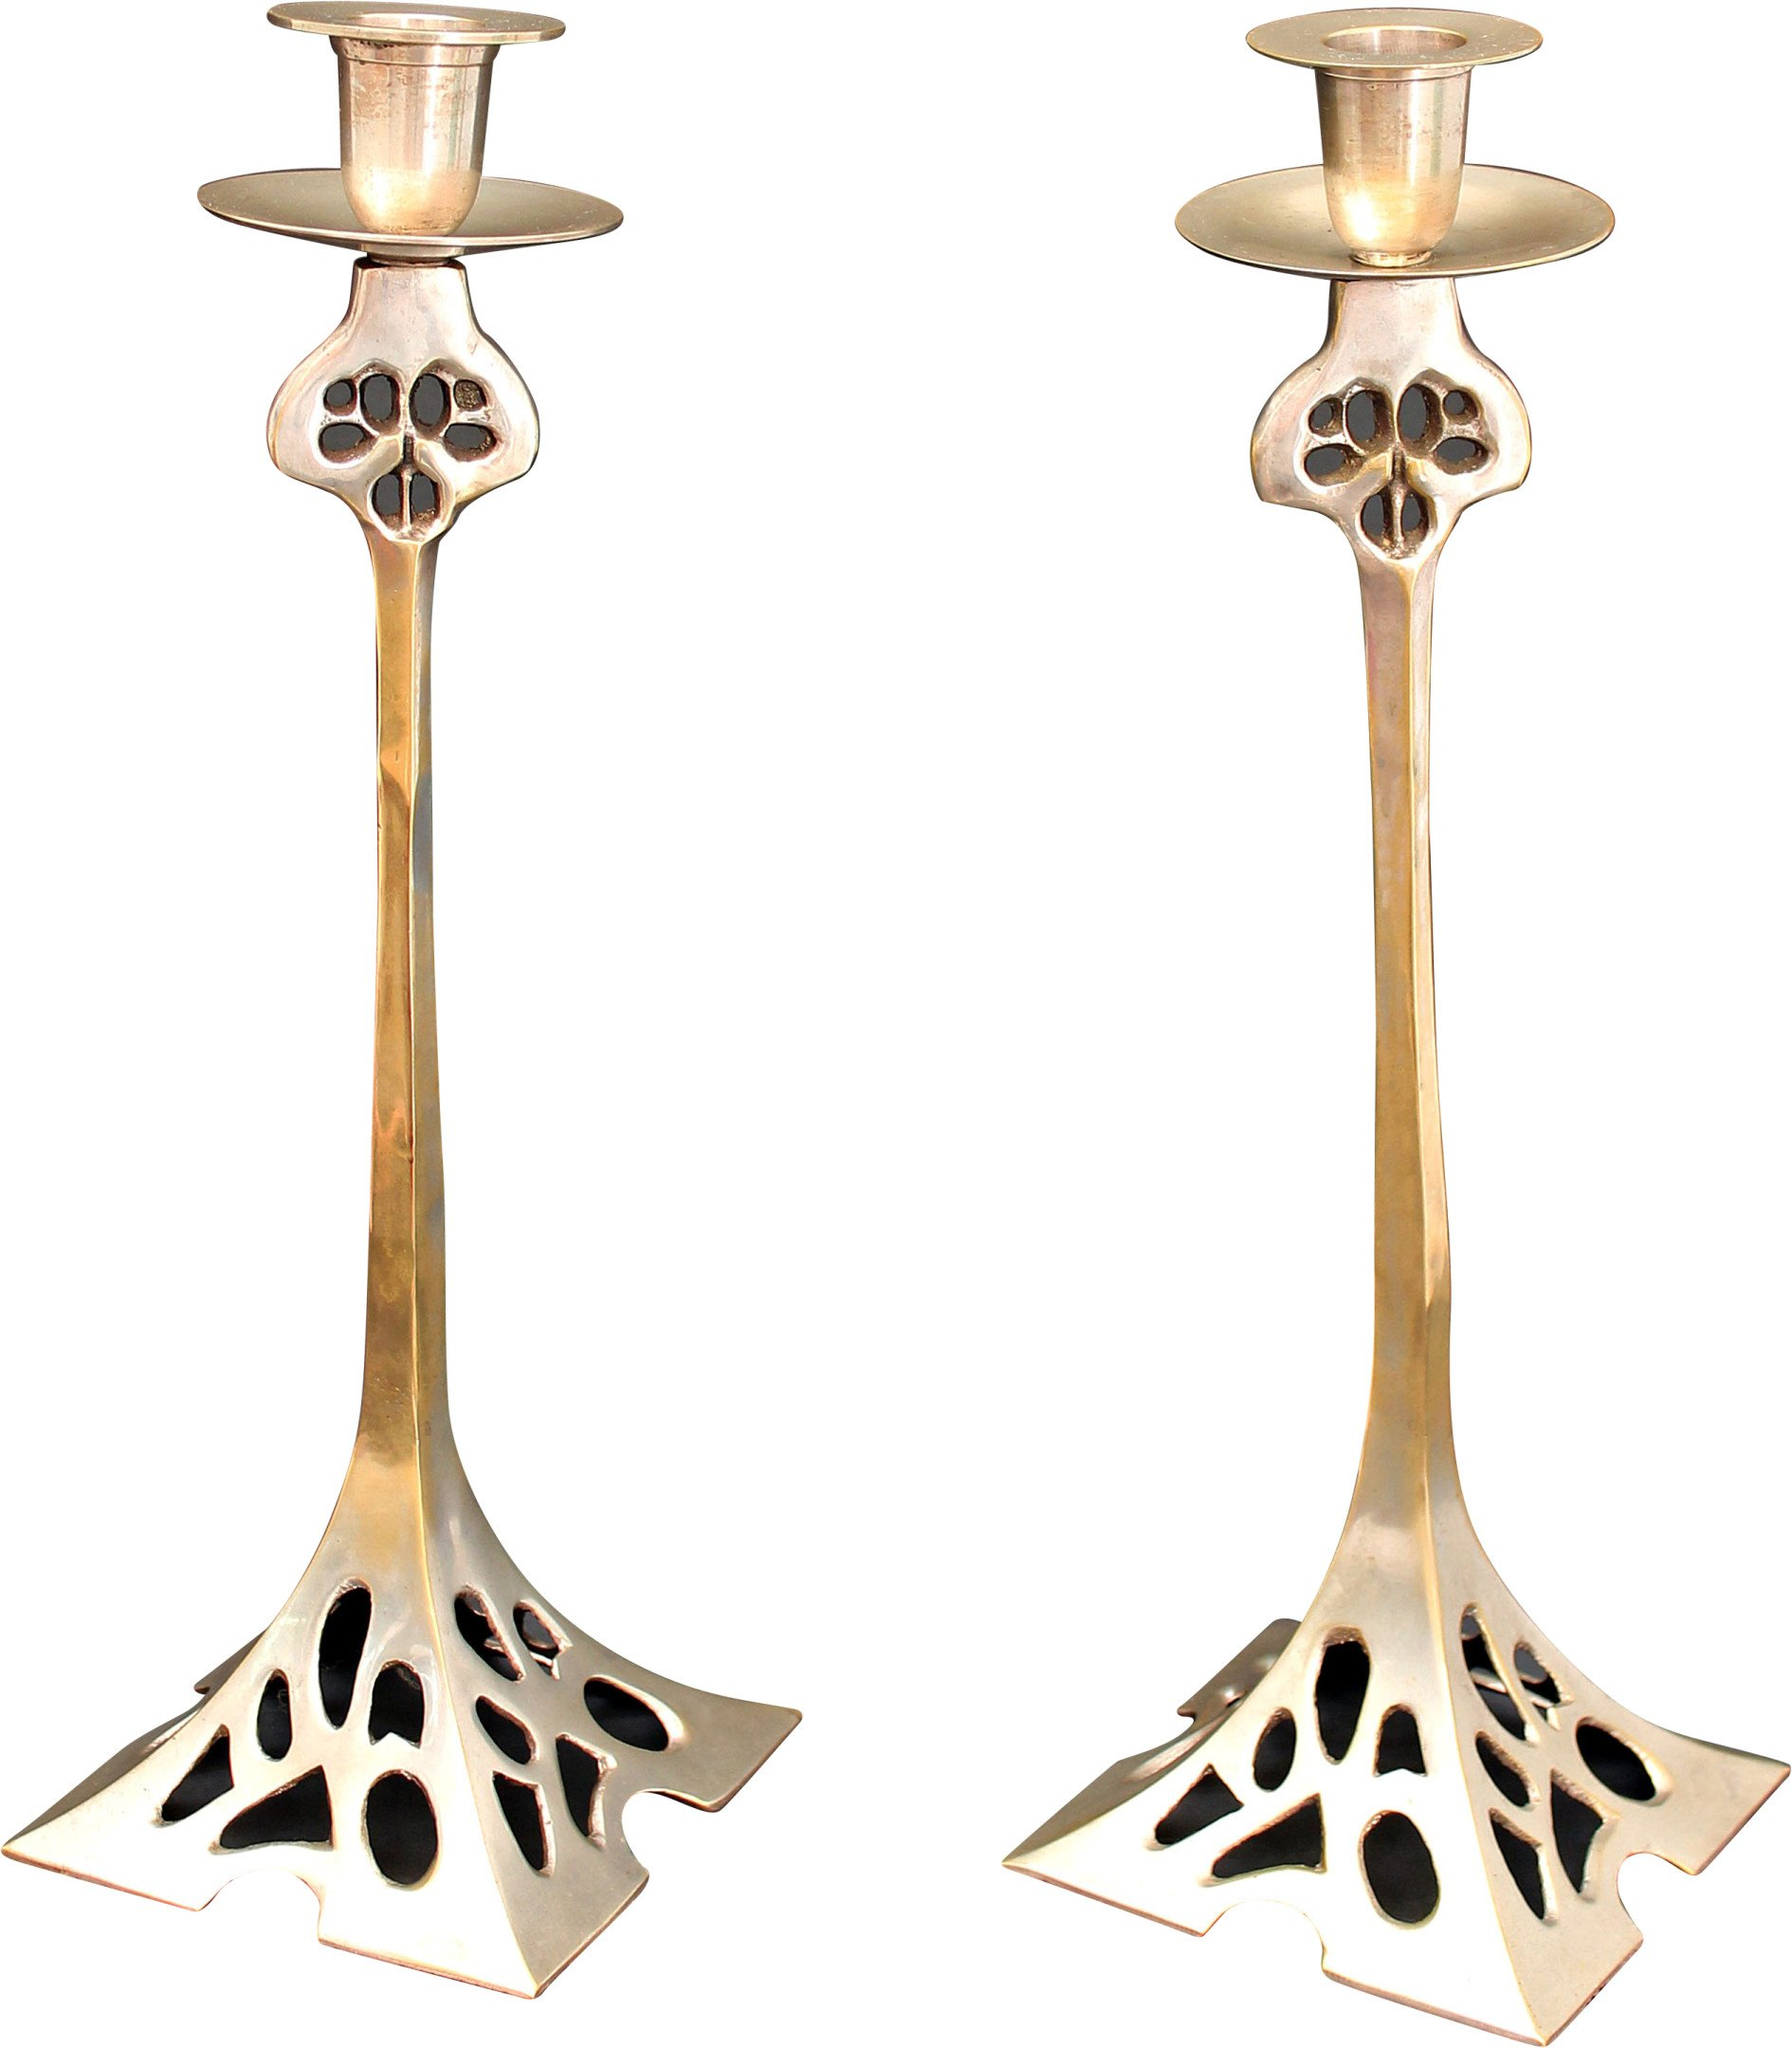 Pair of Candleholders, early 20th C.